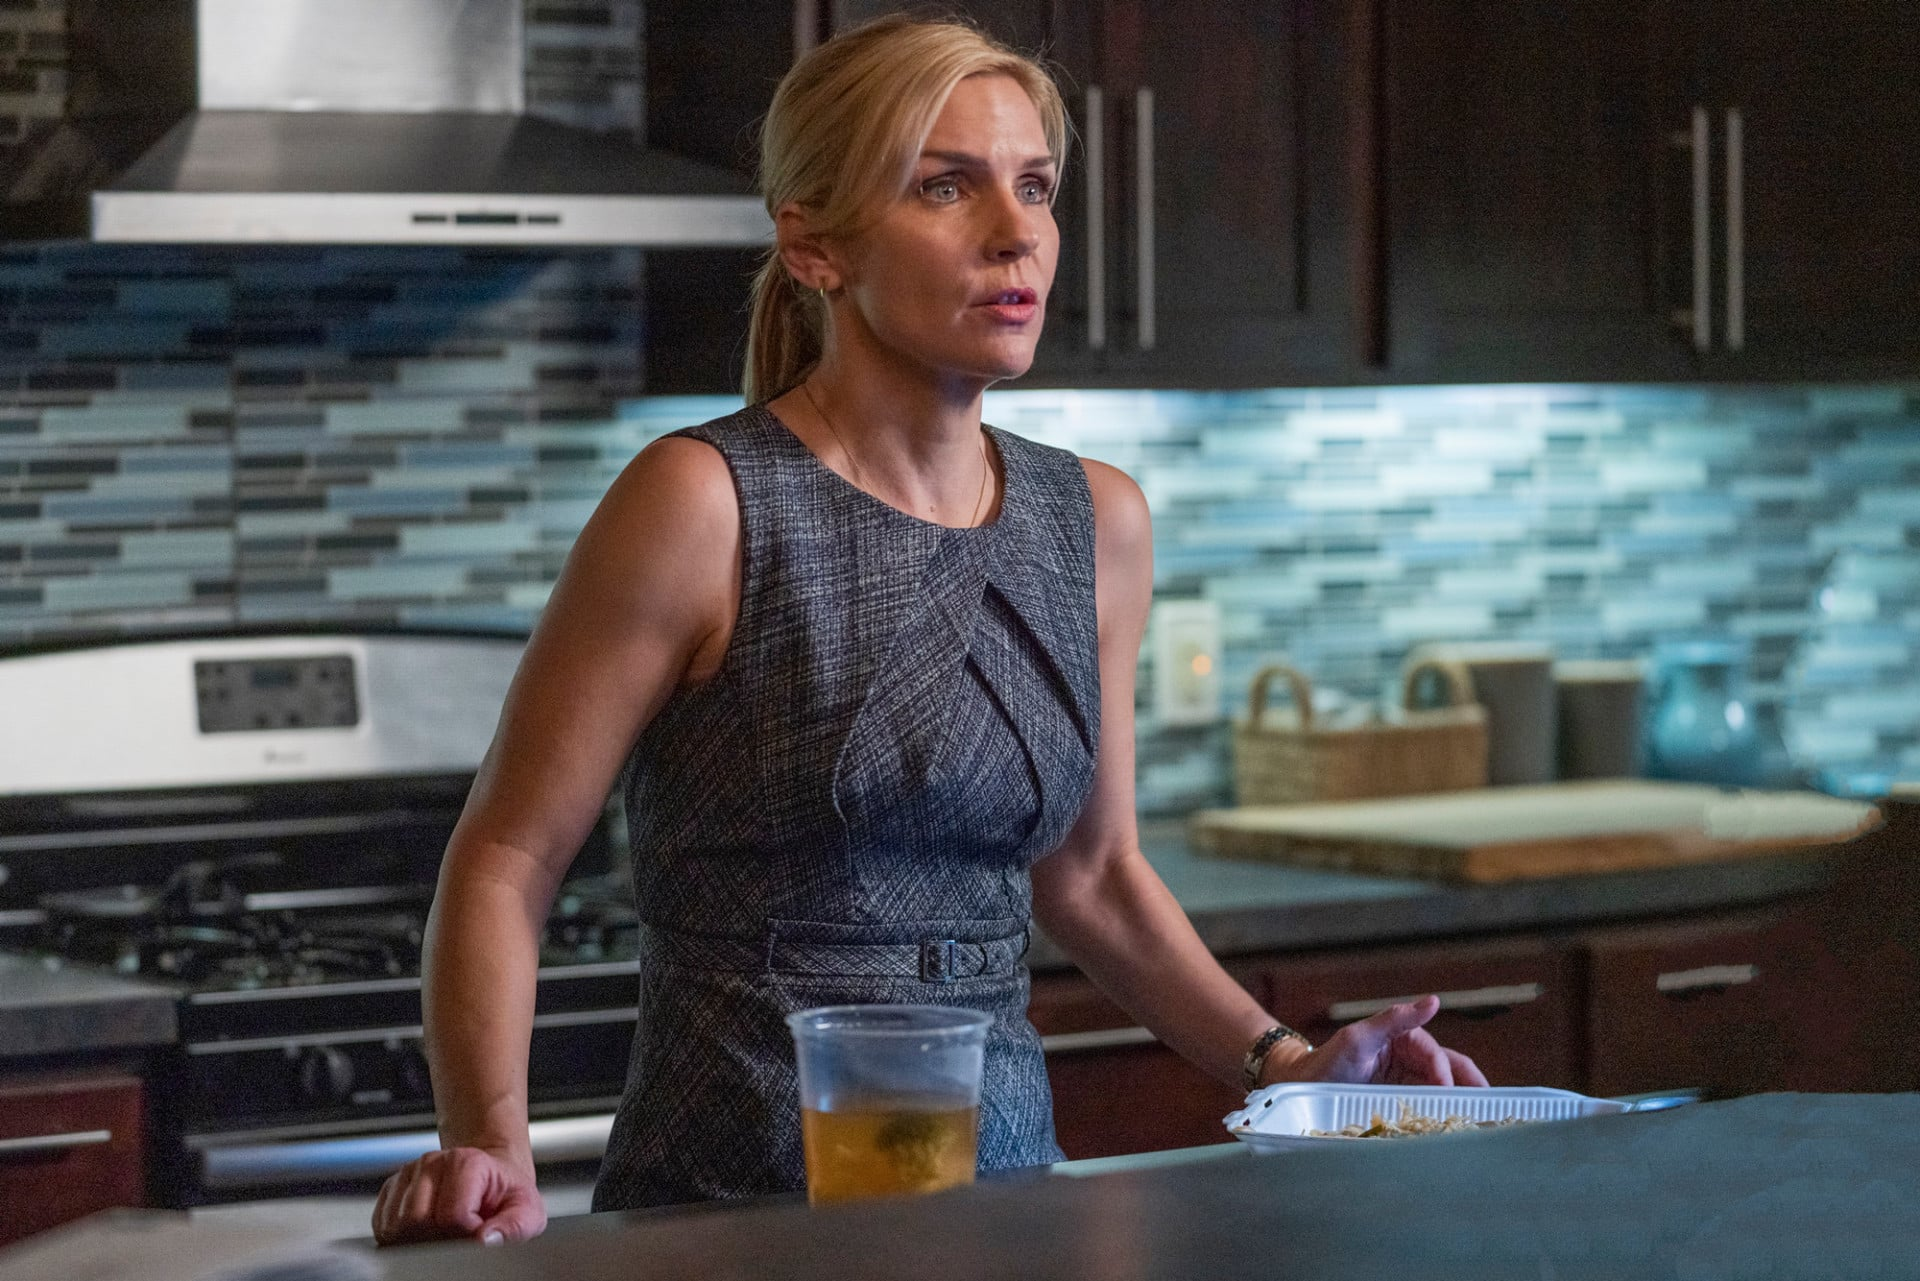 Better Call Saul is a eulogy for the antihero Golden Age of Television and Breaking Bad, Walter White / Kim Wexler